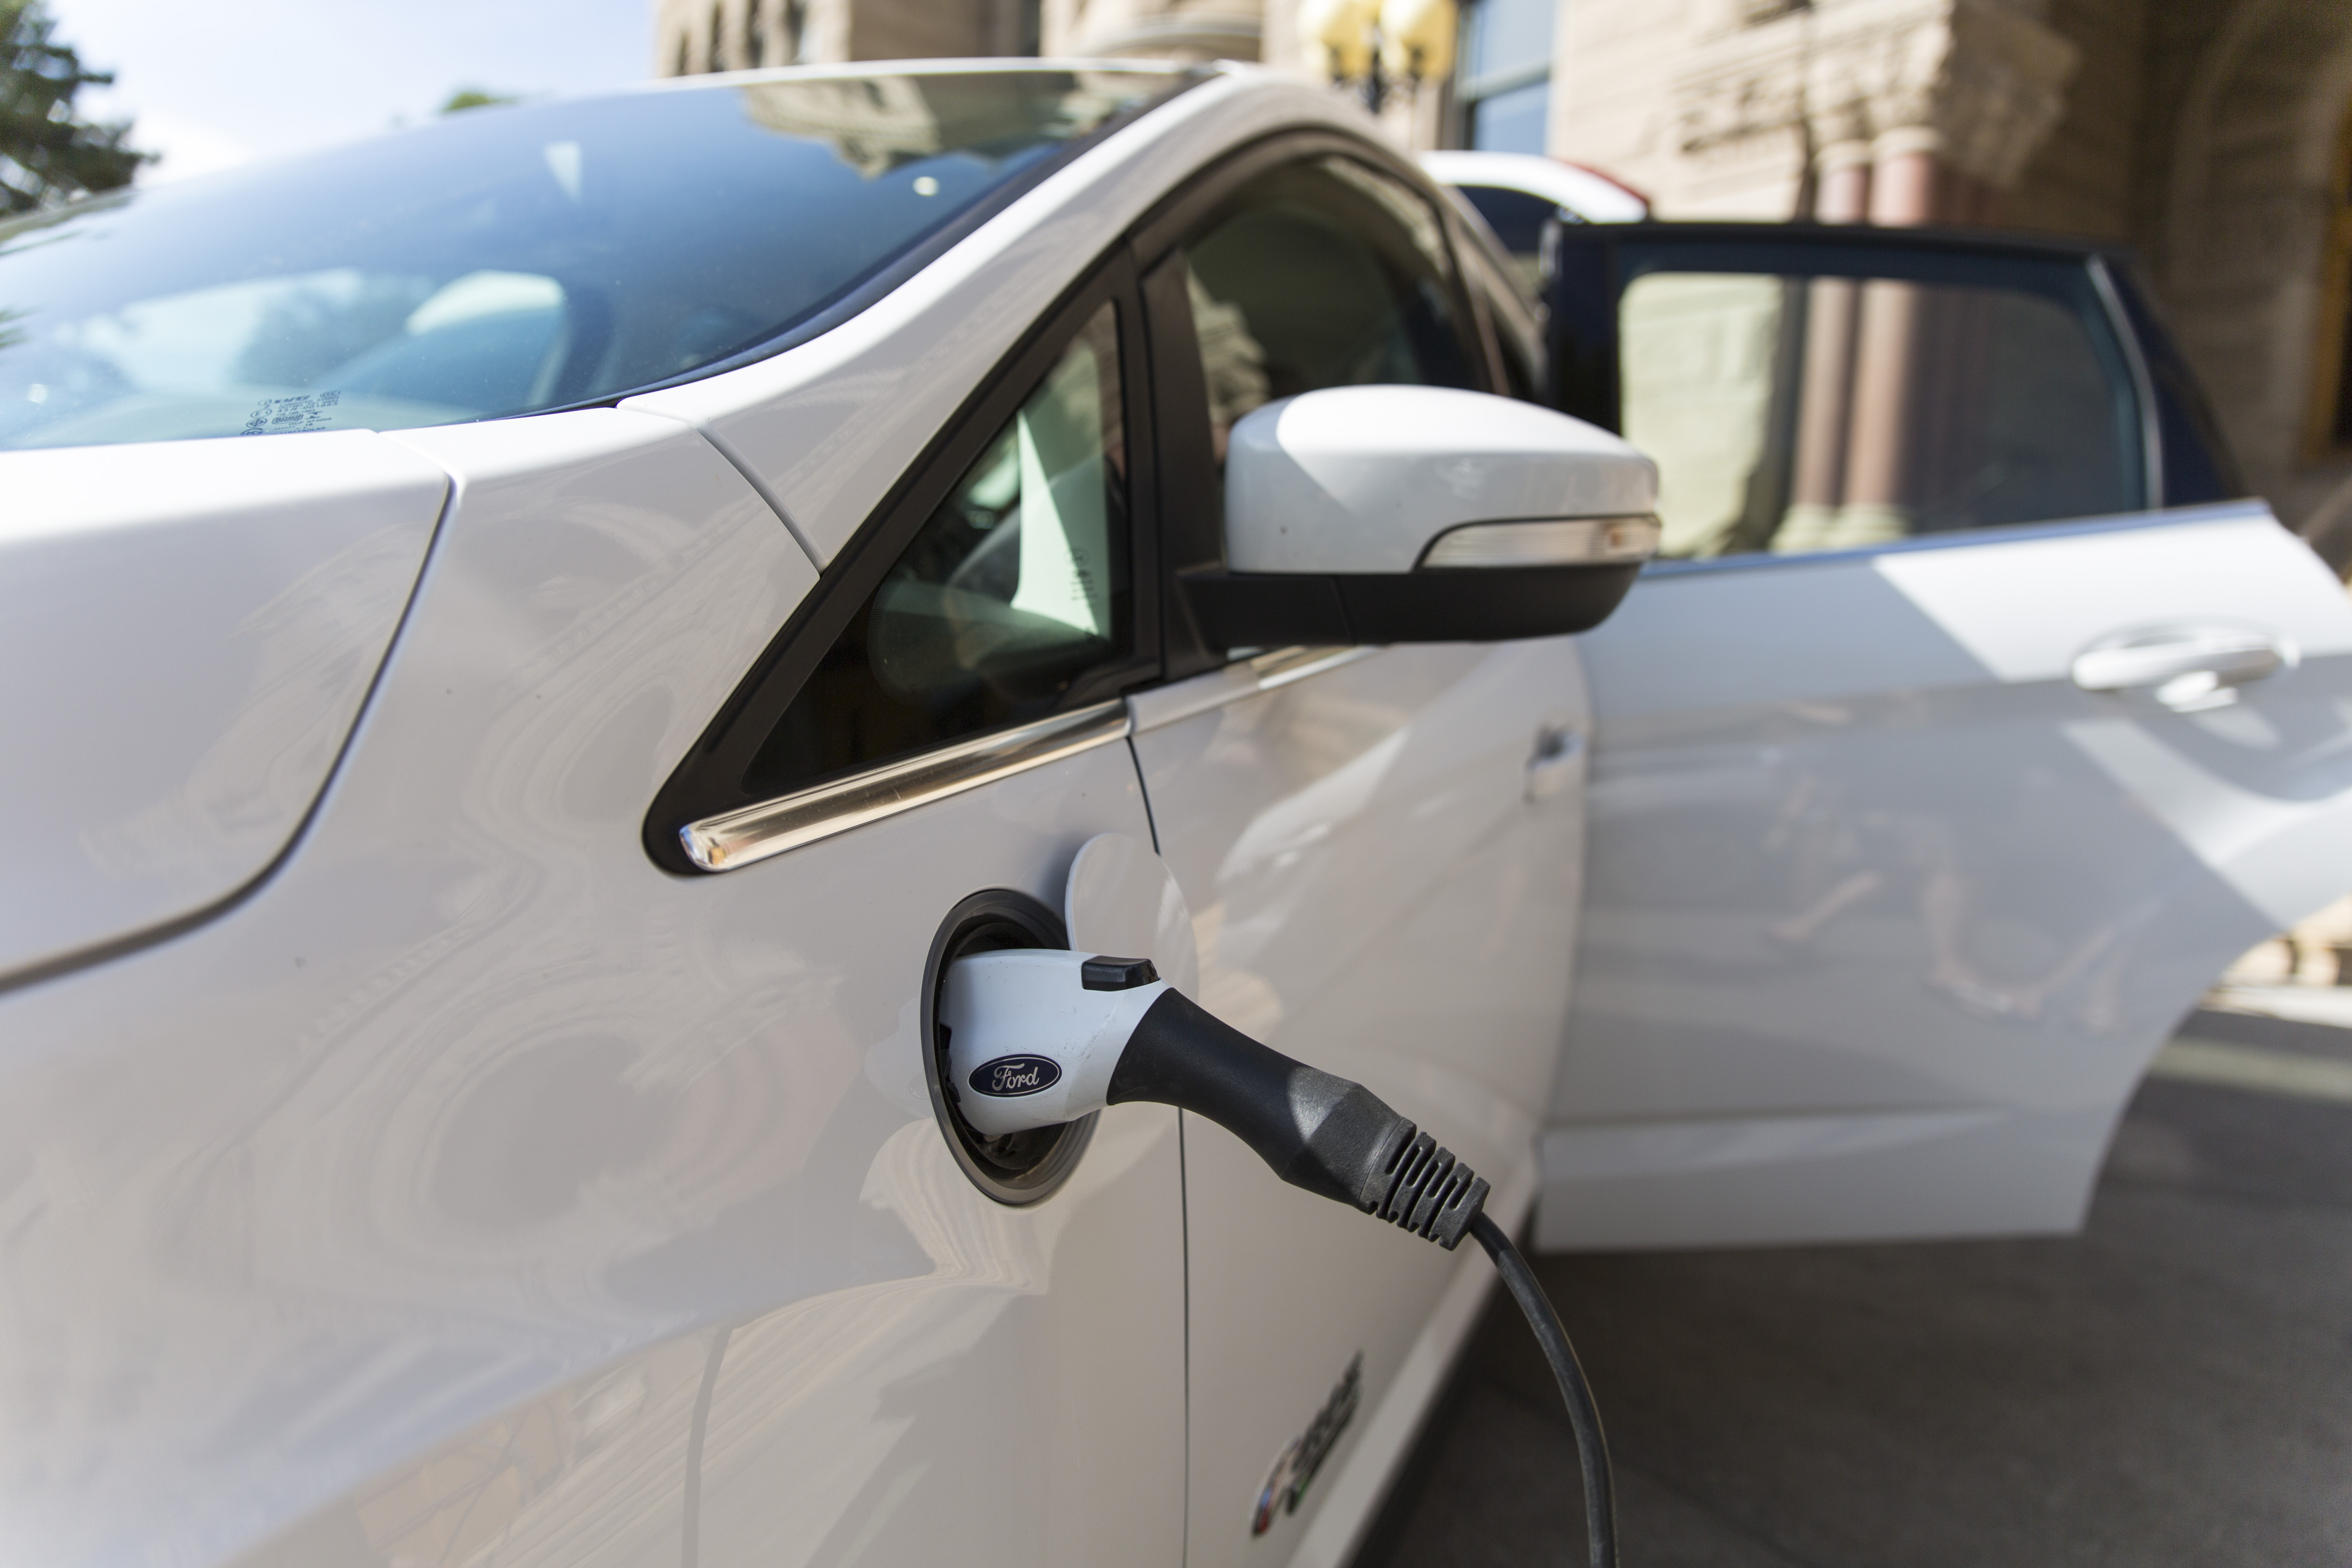 Salt Lake City and University of Utah collaborate to help make electric cars more affordable.